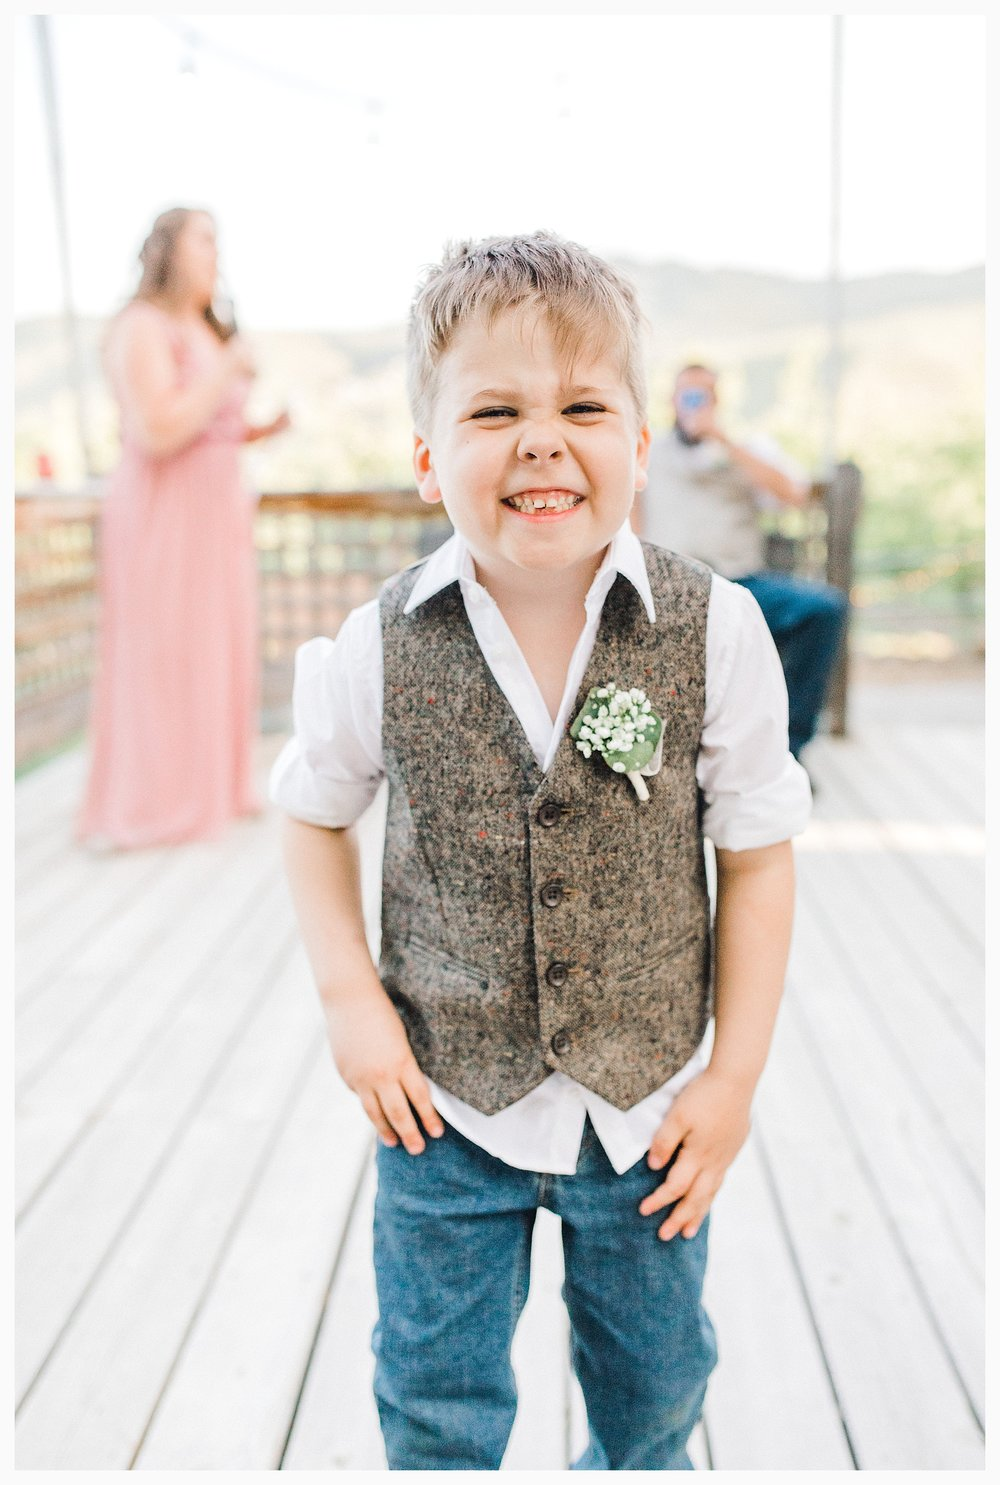 Rustic barn wedding in Wenatchee Washington at Sunshine Ranch on Easy Street, Emma Rose Company Seattle PNW Light and Airy Wedding Photographer_0095.jpg